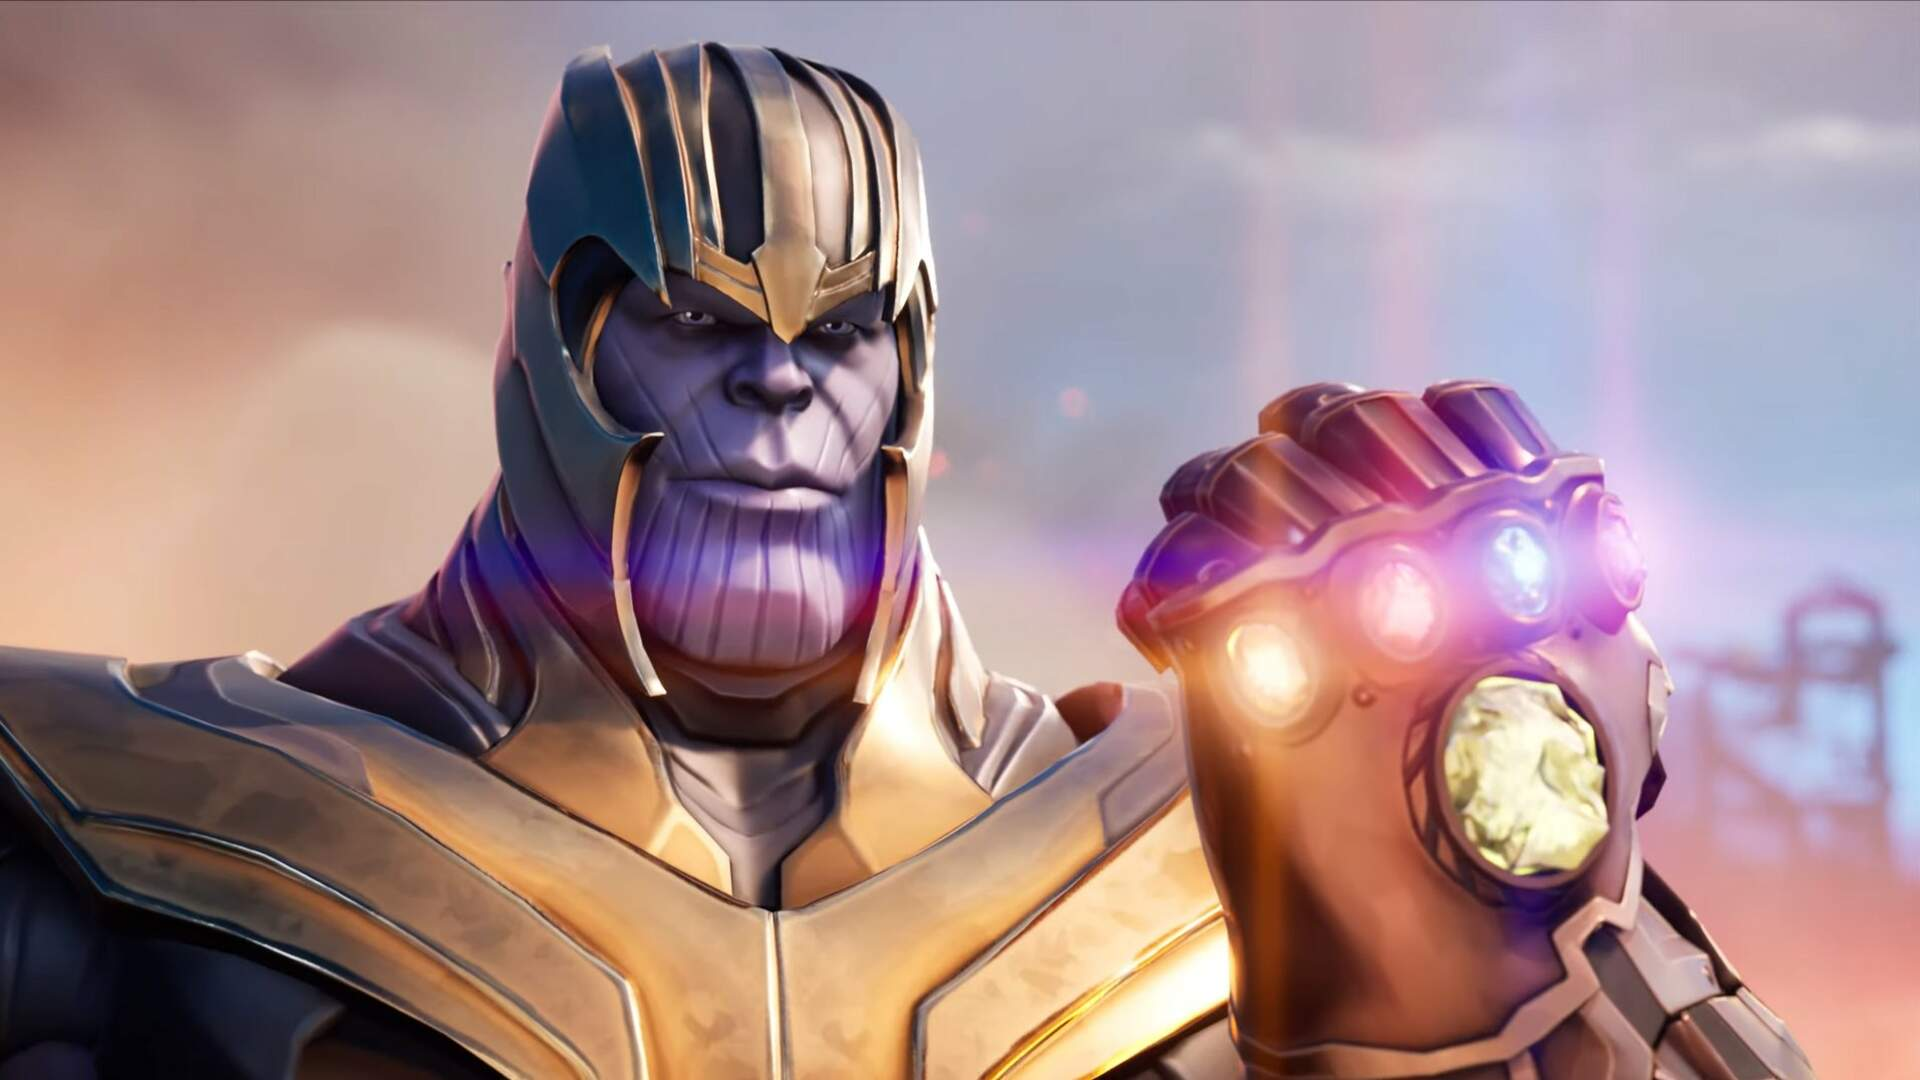 Is There an Avengers Endgame Video Game?